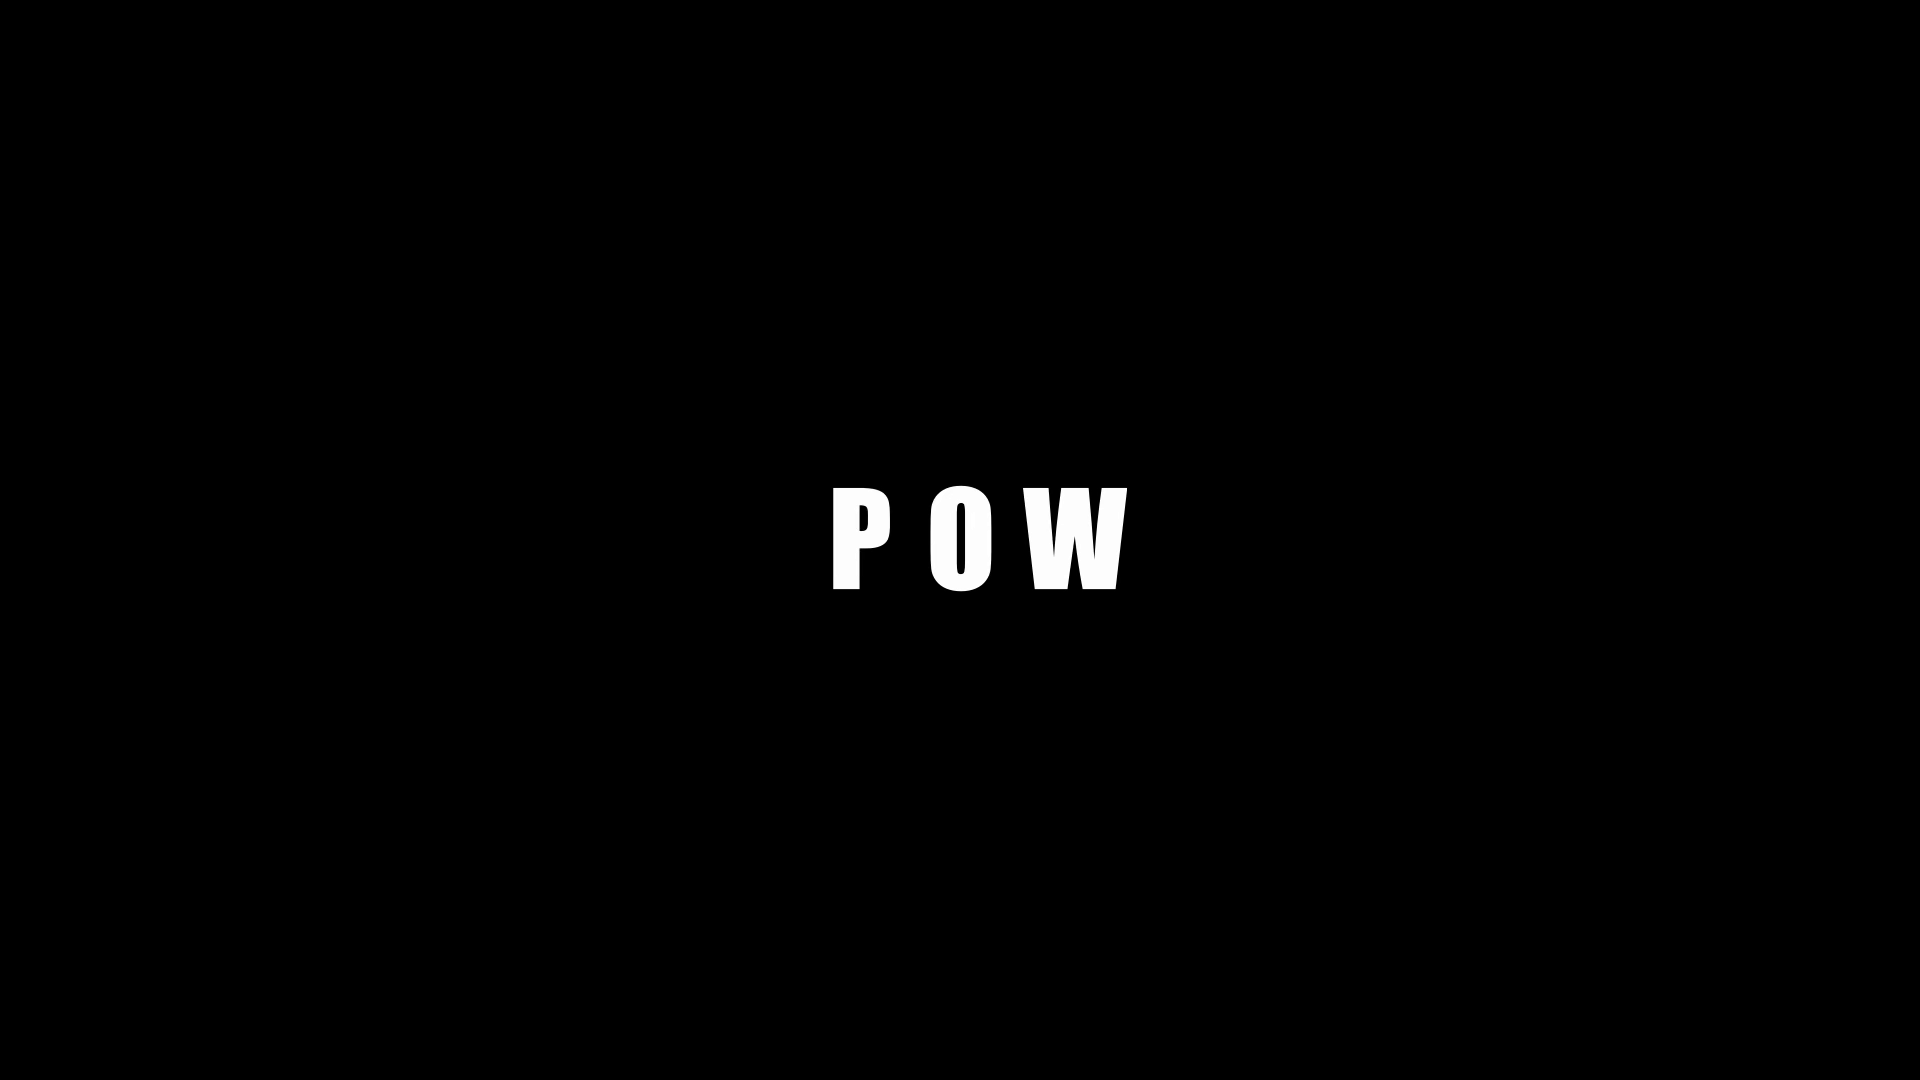 Image for Trailer: 'POW' - Preview of Documentary in Production